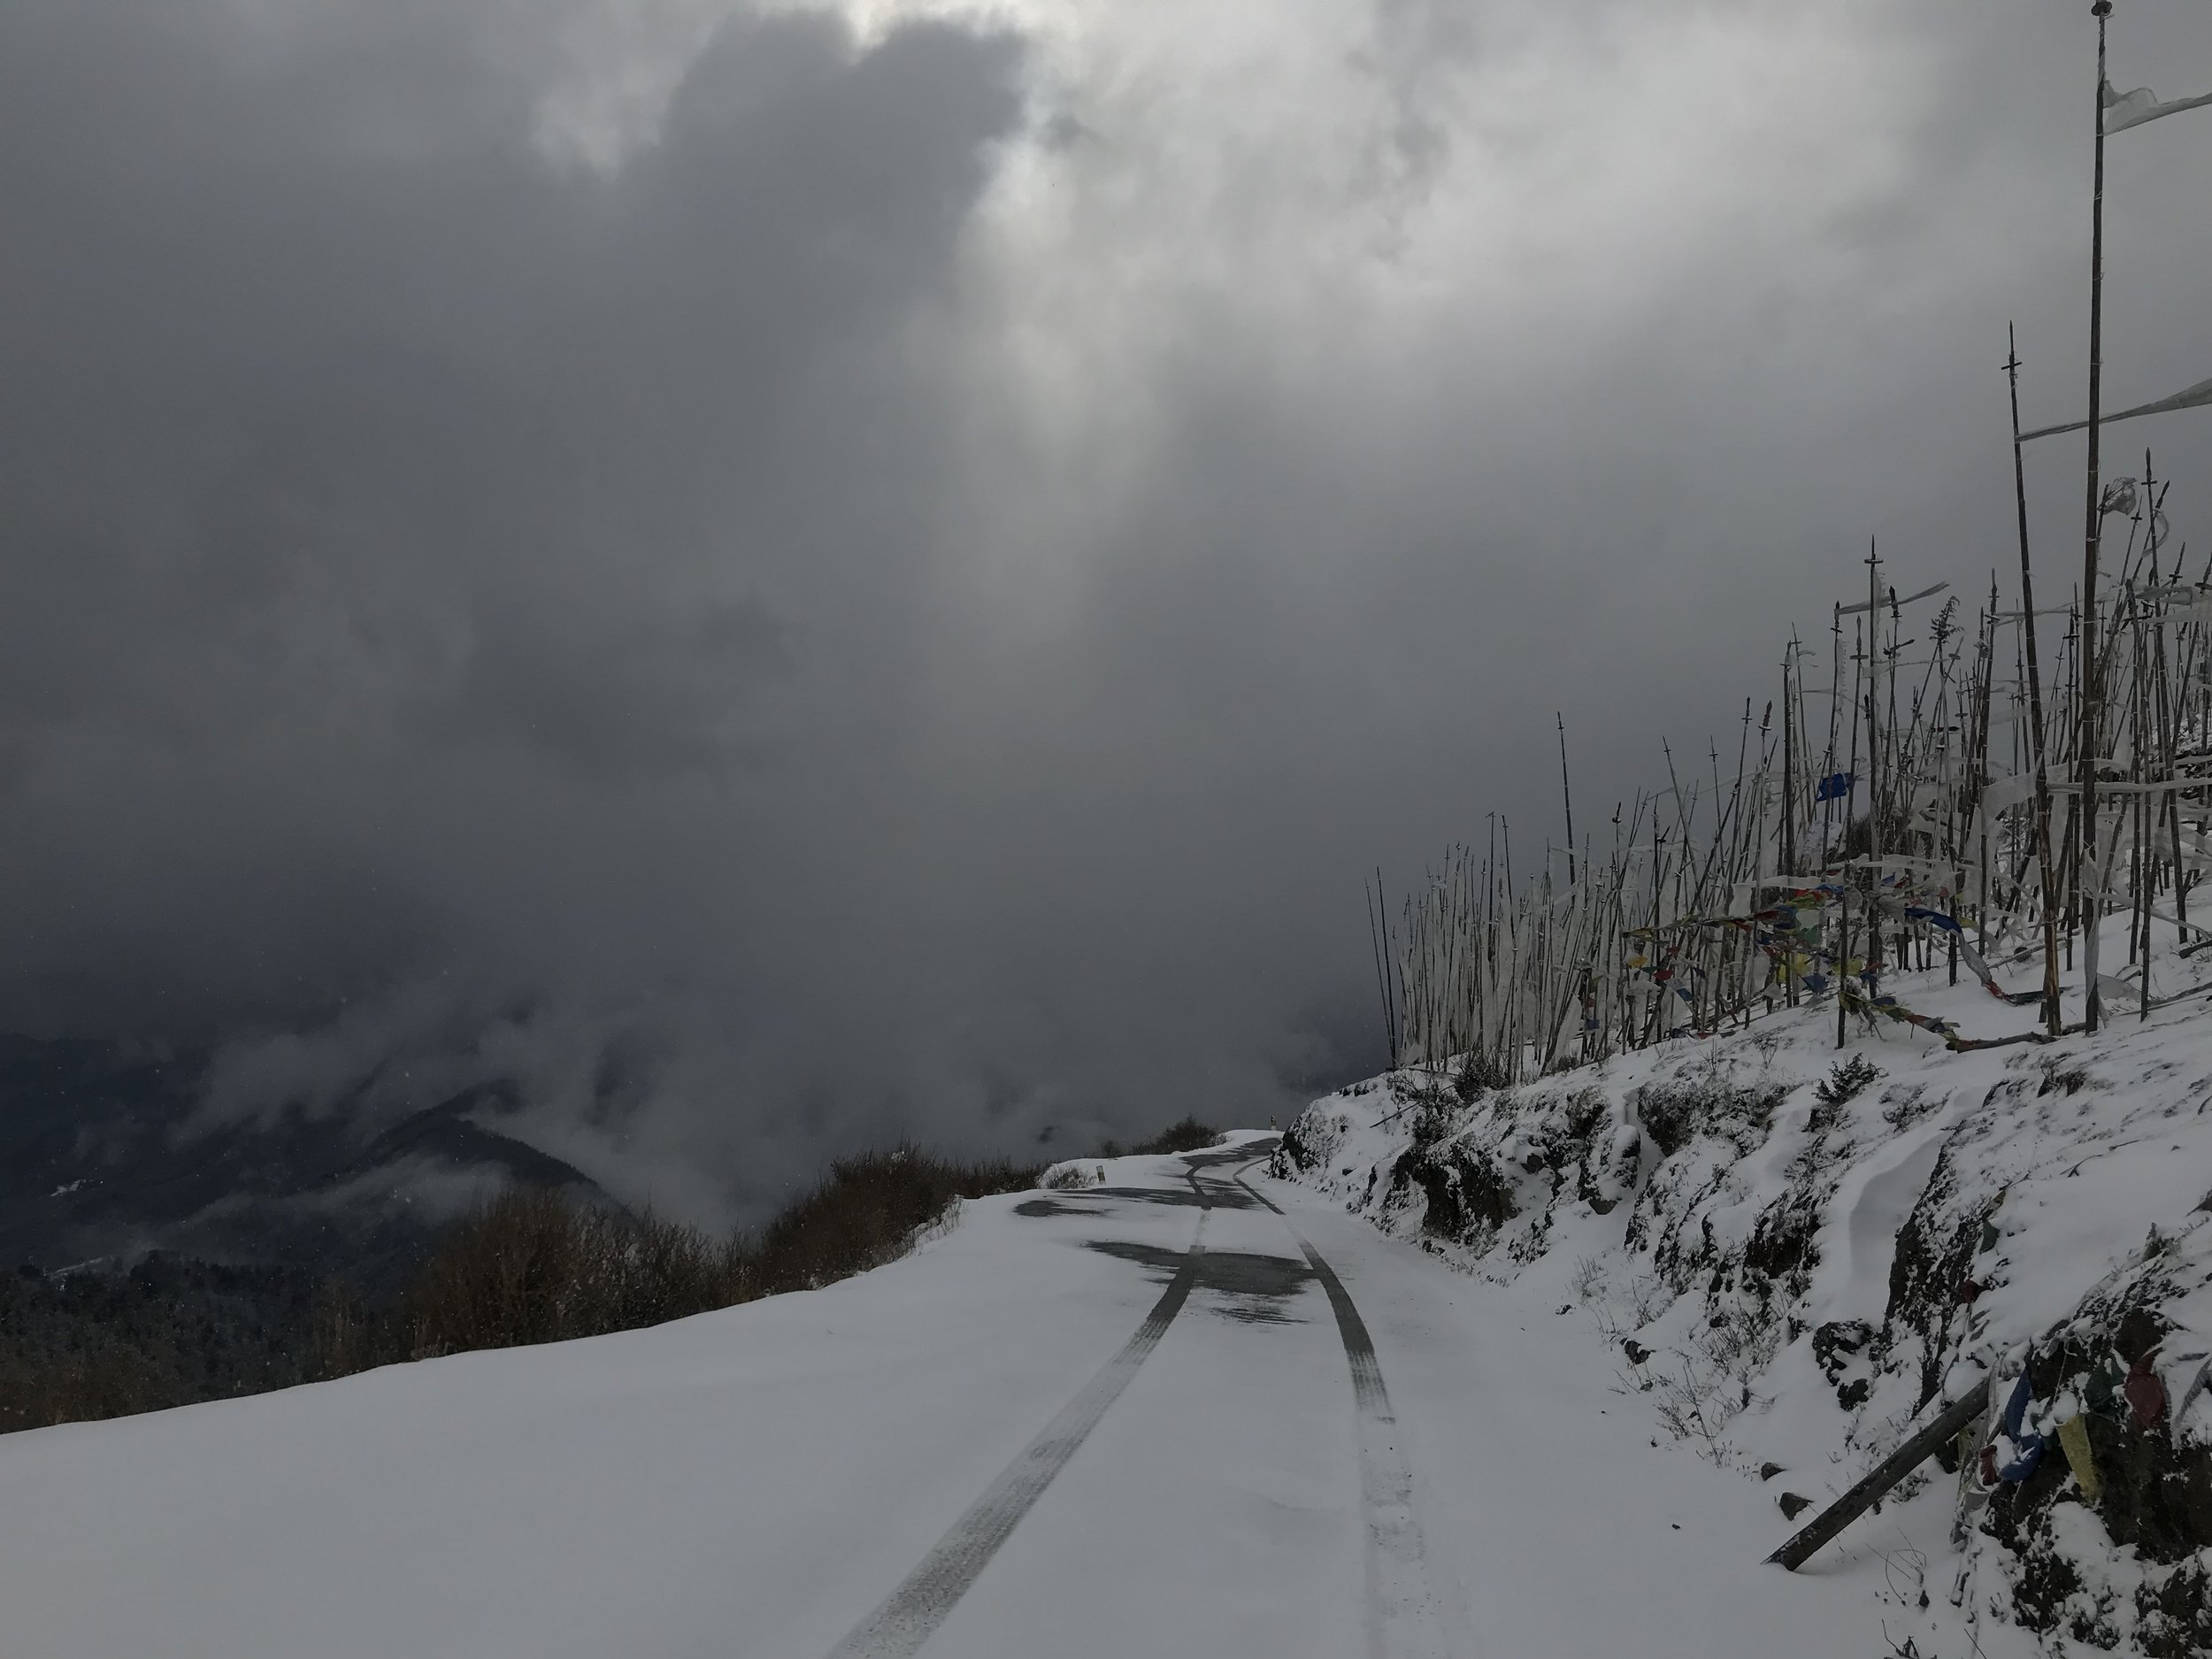 Once we reach the top of Chele La, however, the road is mostly snowed over. Don't look down!